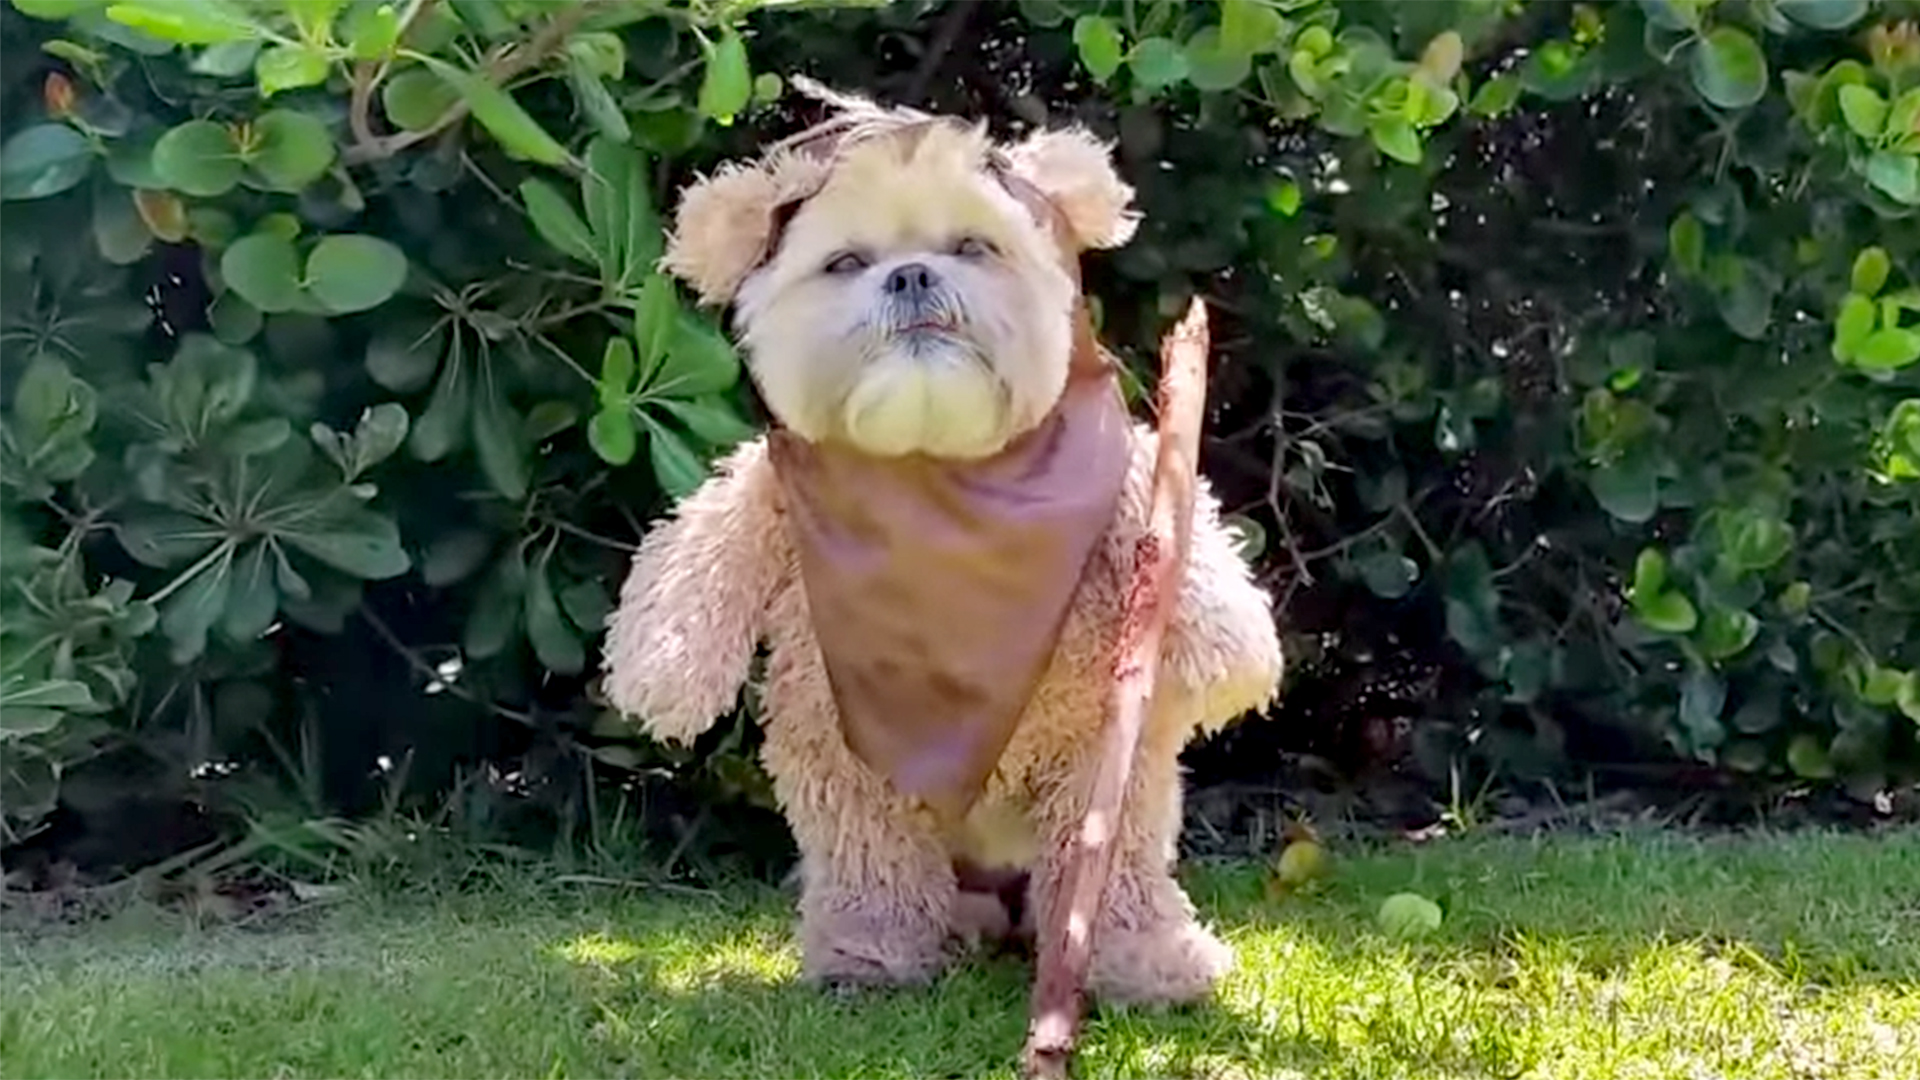 Star Wars Fans Munchkin The Dogs Cute Ewok Impression Is A Must See